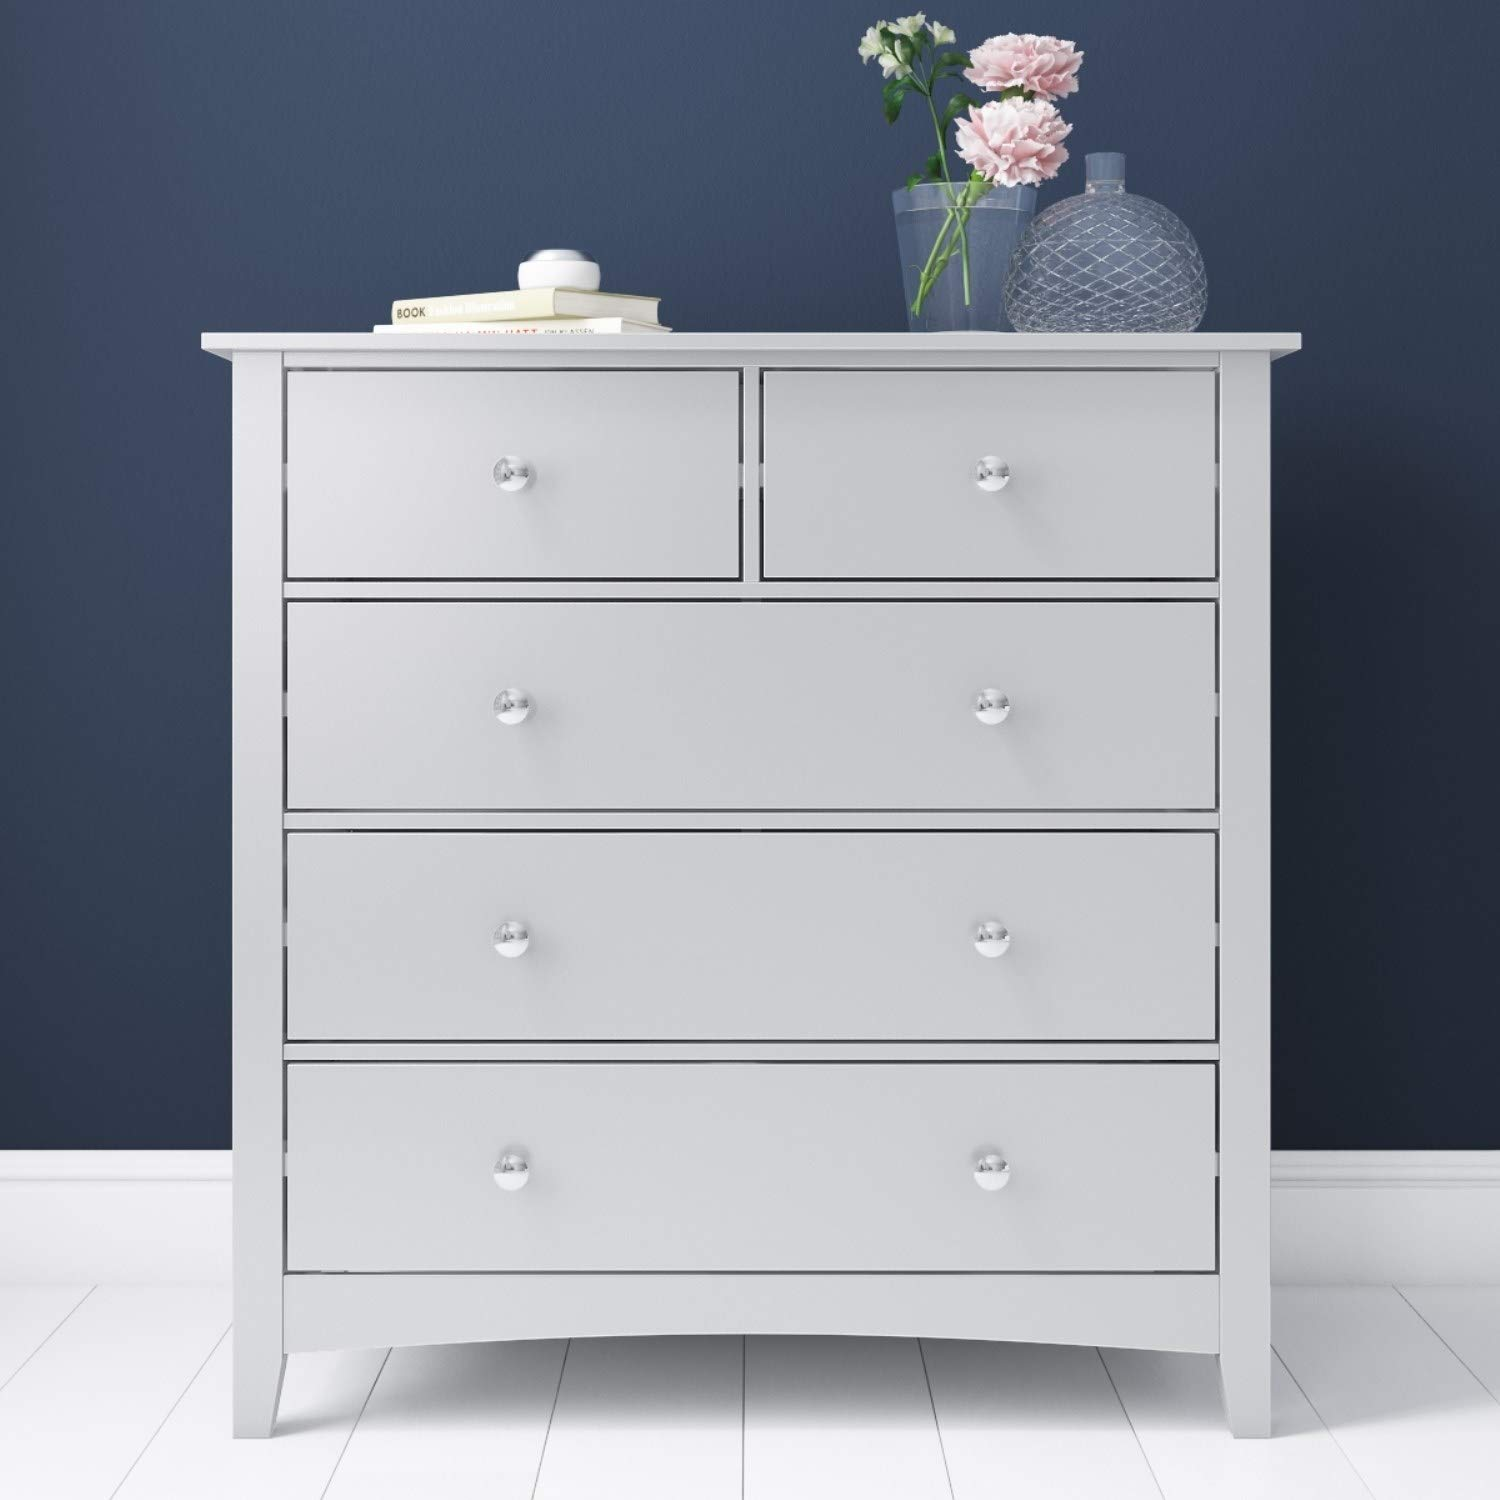 Finch 2 3 Chest Of Drawers In Light Grey Amazon Co Uk Kitchen Home